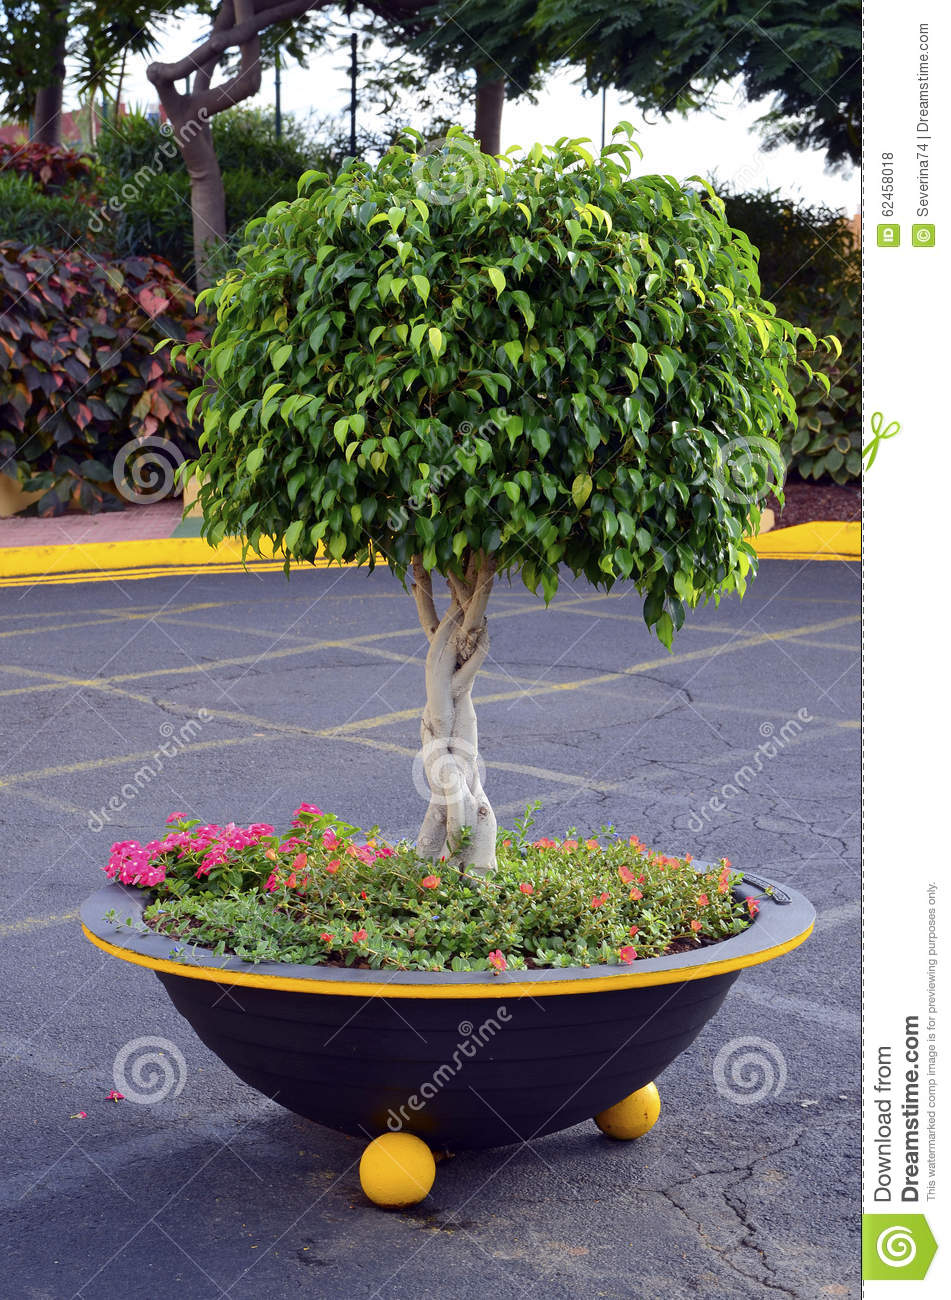 Watch How to Prune a Ficus Tree video